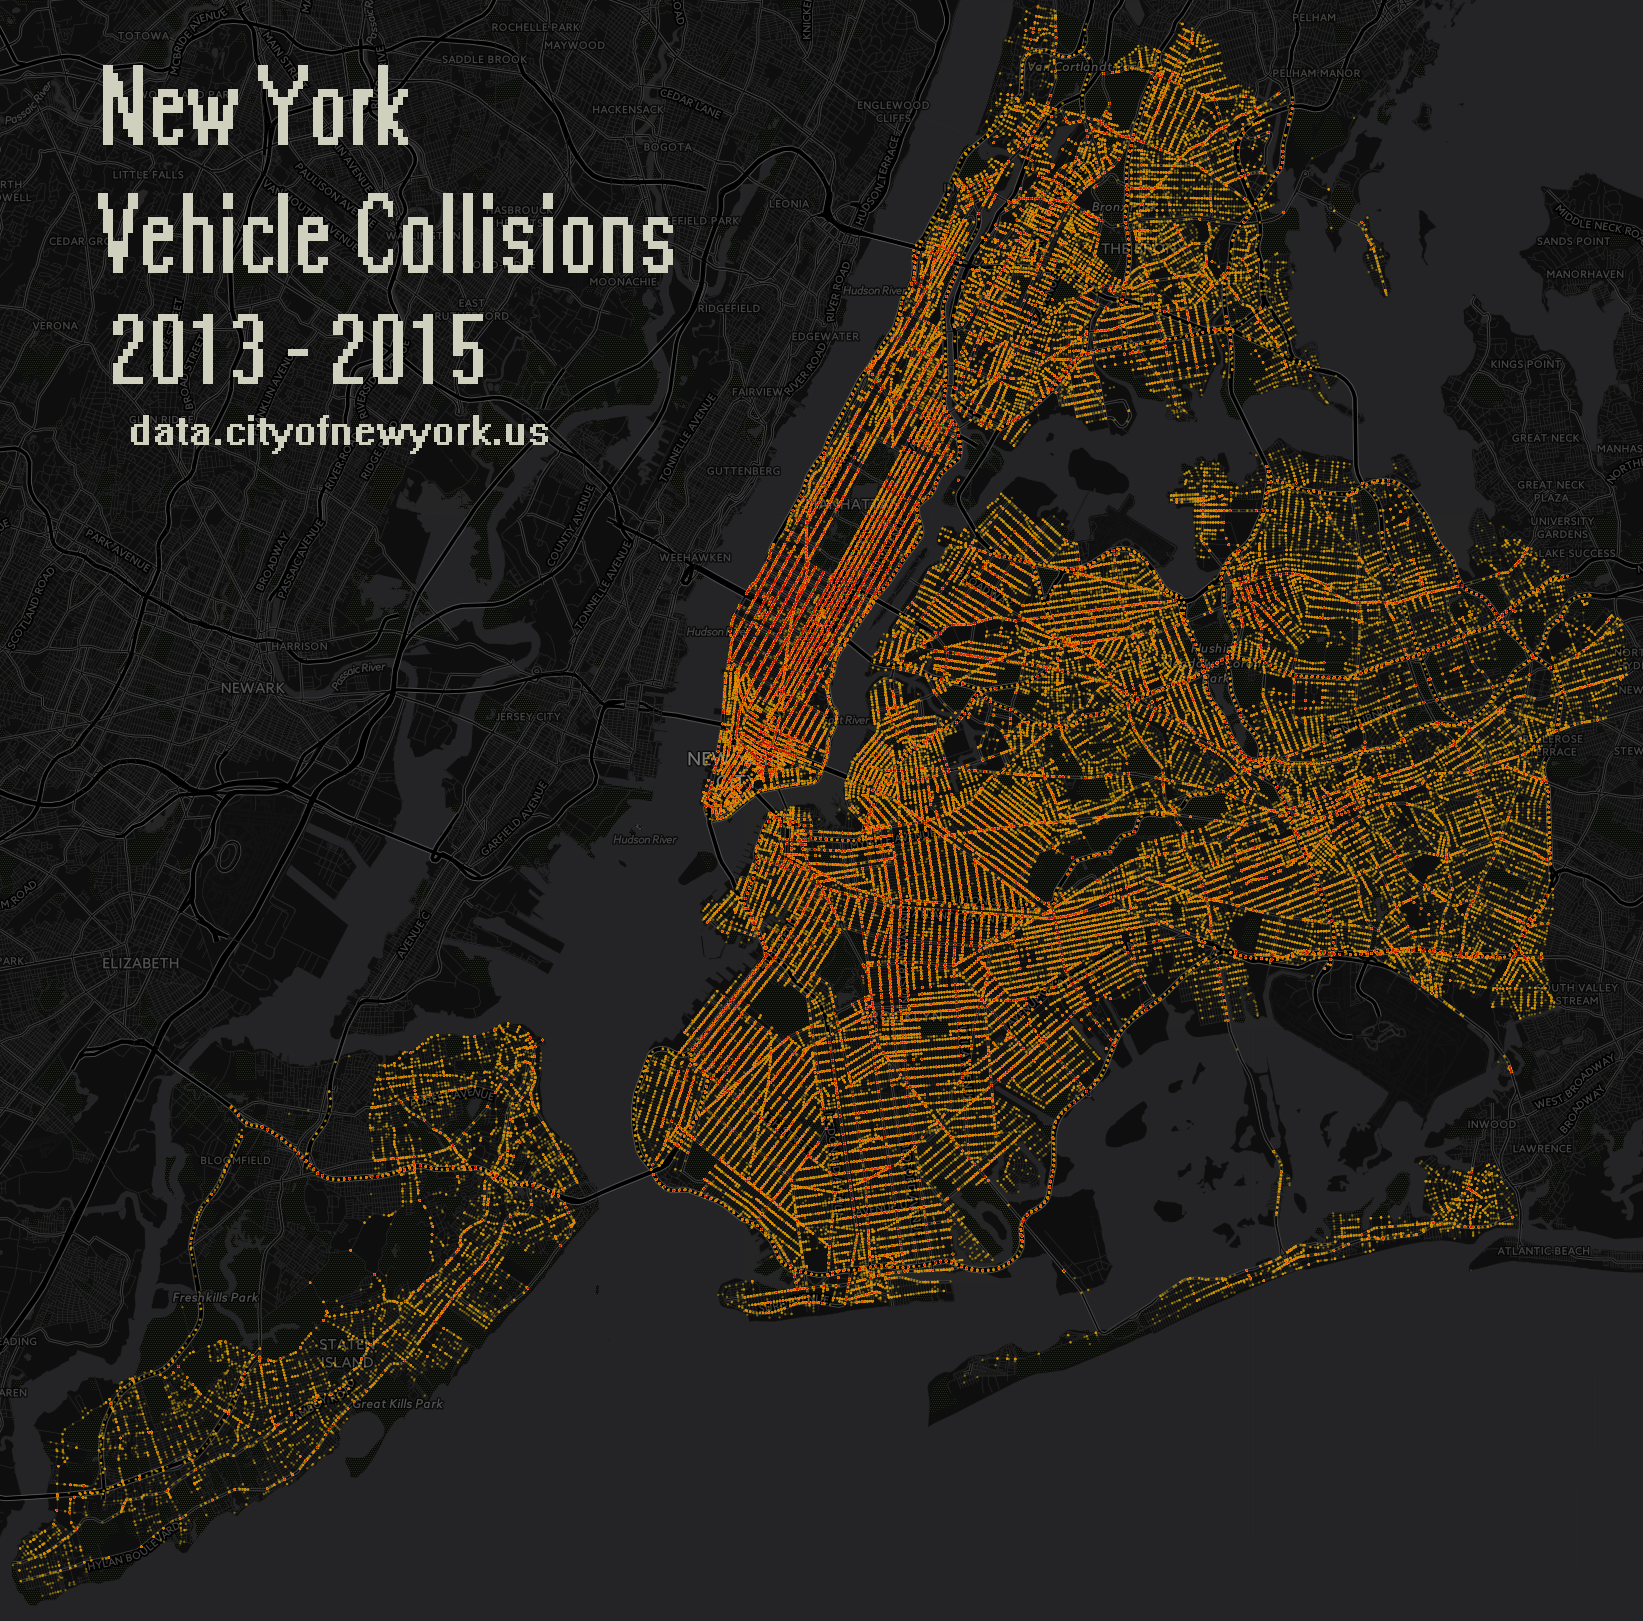 newyork2013-2015VehicleCollisions_Data_Intensity_Map